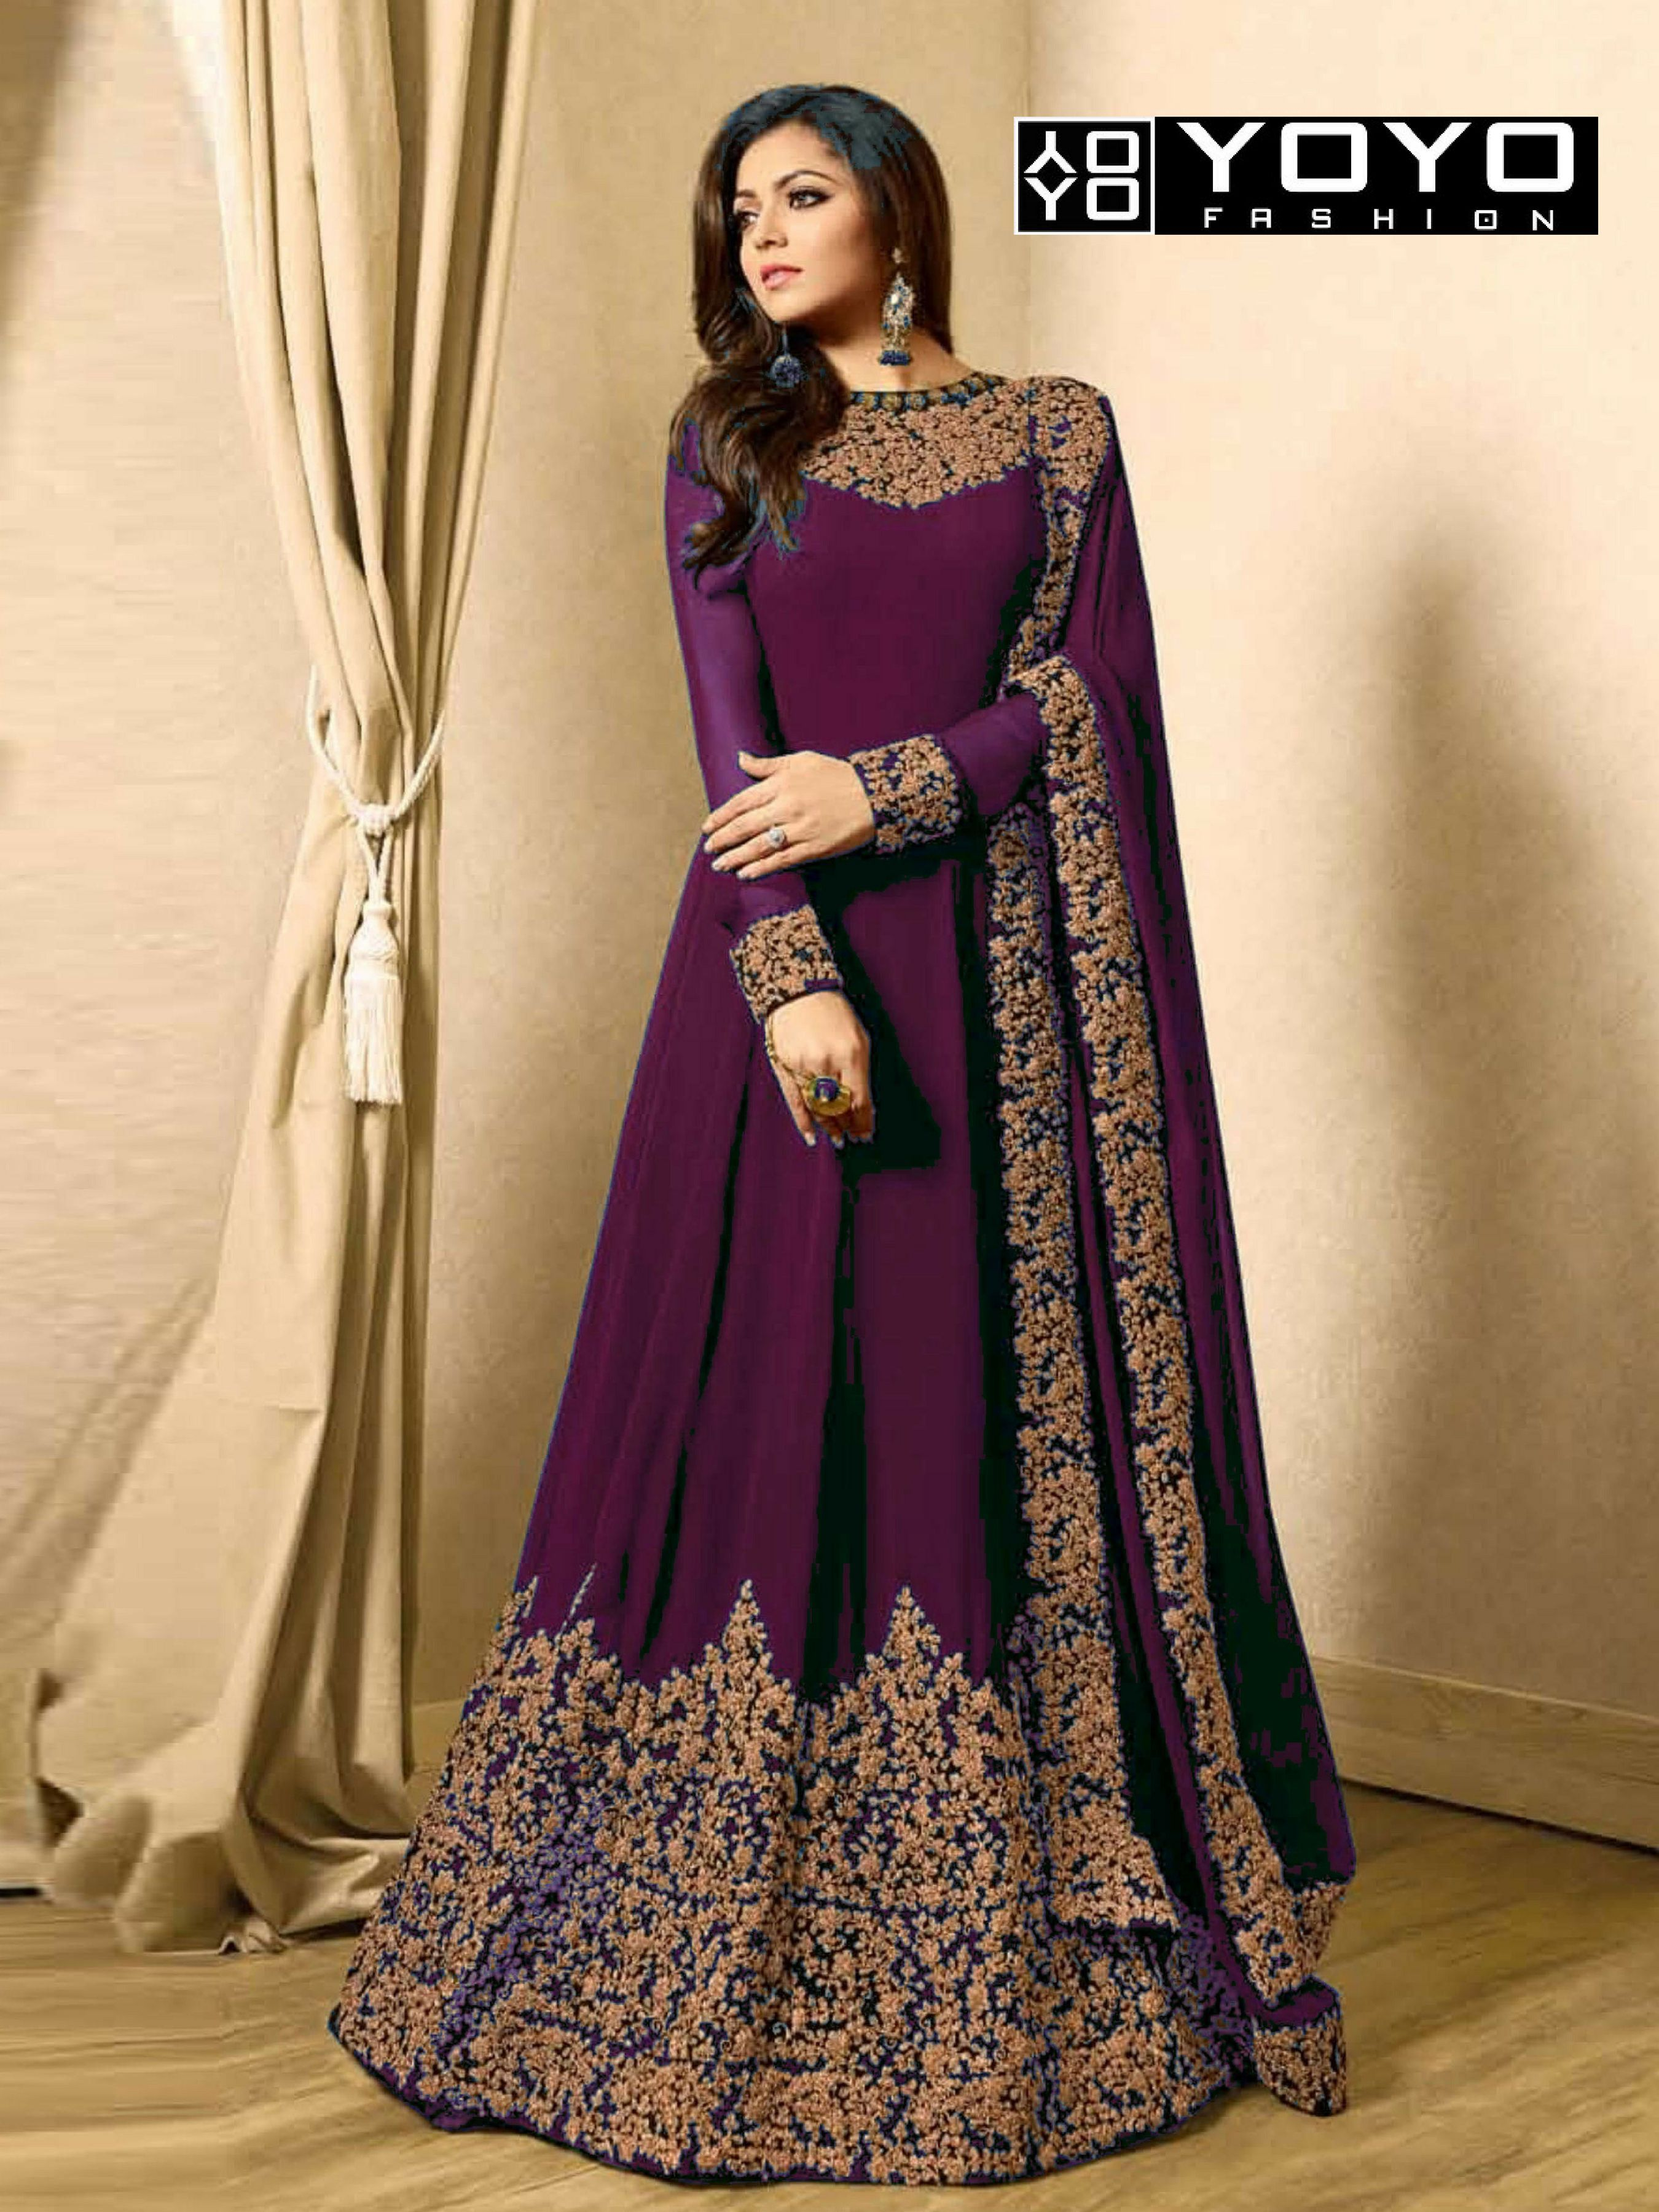 540b3f4515 YOYO Designer Faux Georgette Purple Embroidered Anarkali Salwar Suit ...